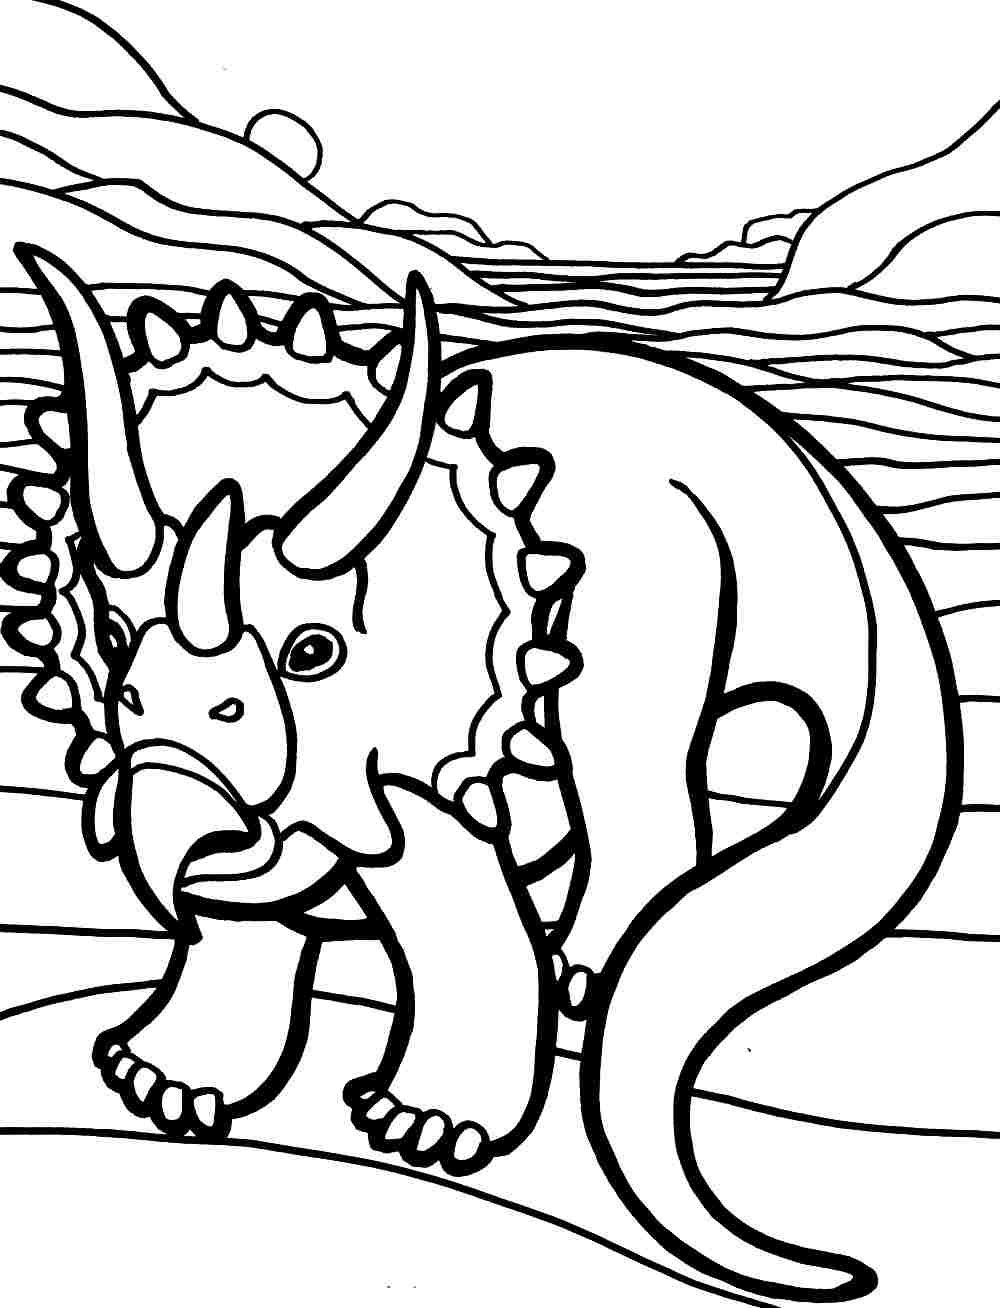 1000x1308 Triceratops Coloring Pages